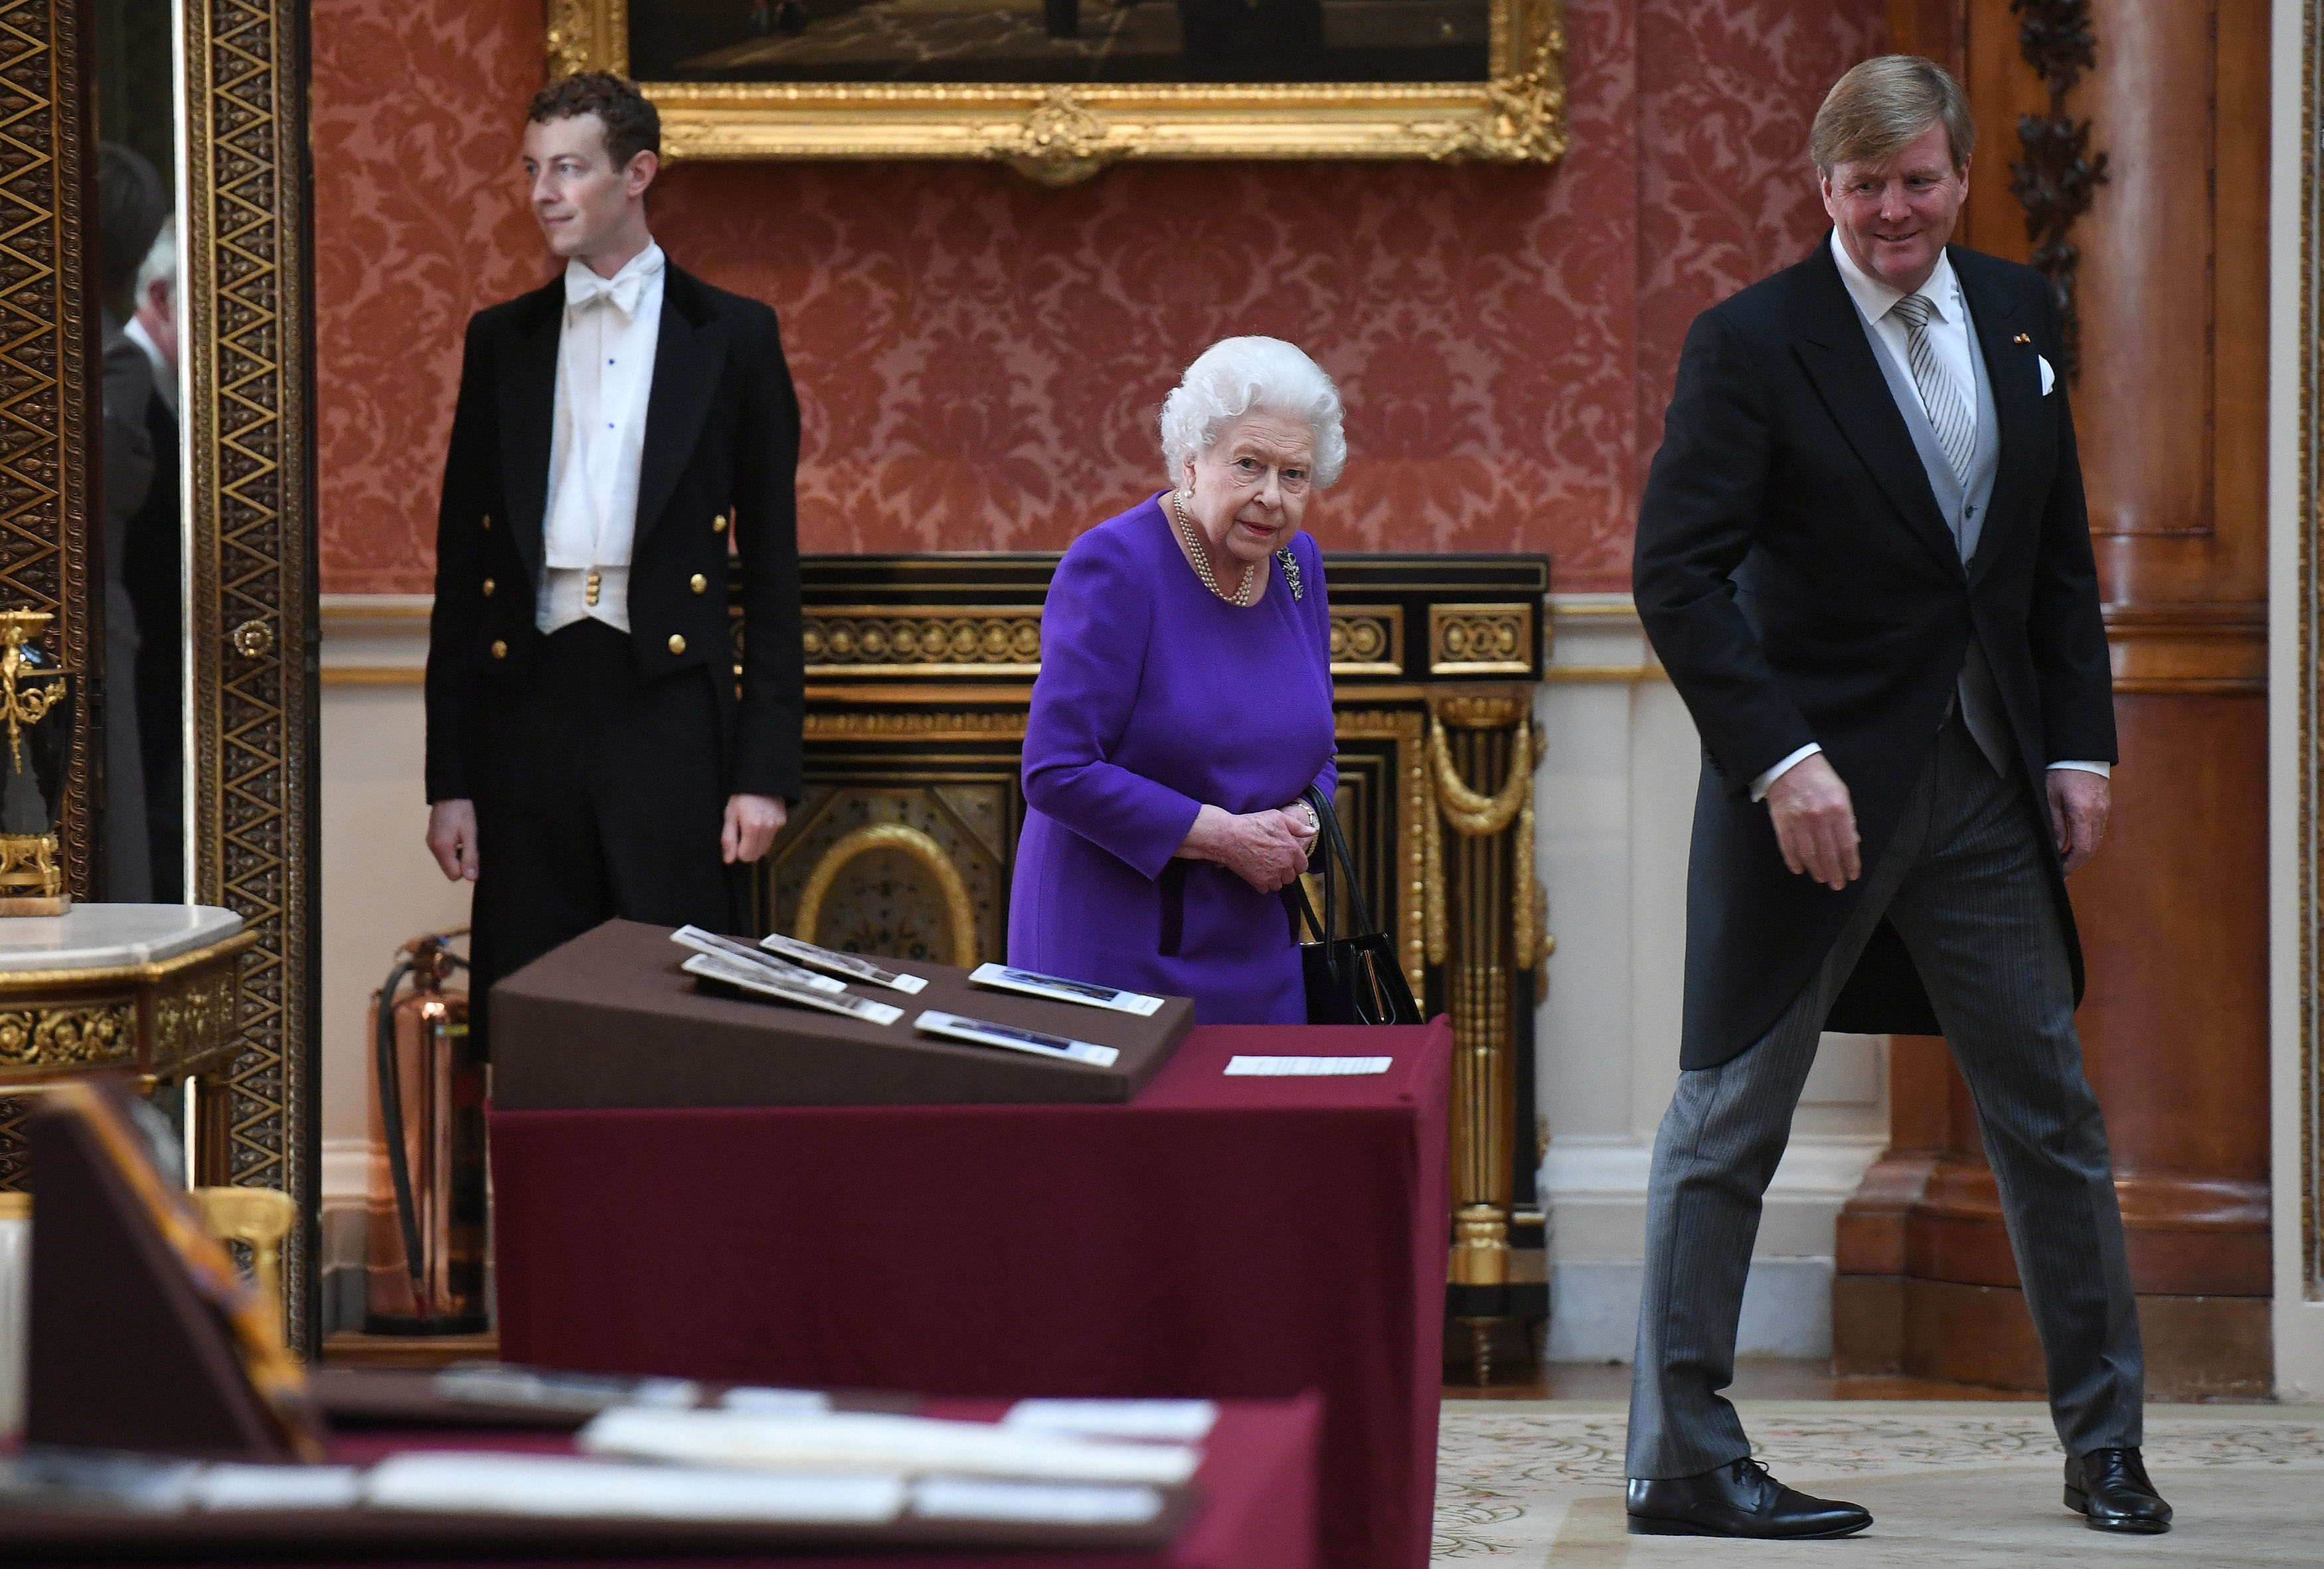 Netherlands State Visit The Queen views Dutch objects in the Royal Collection